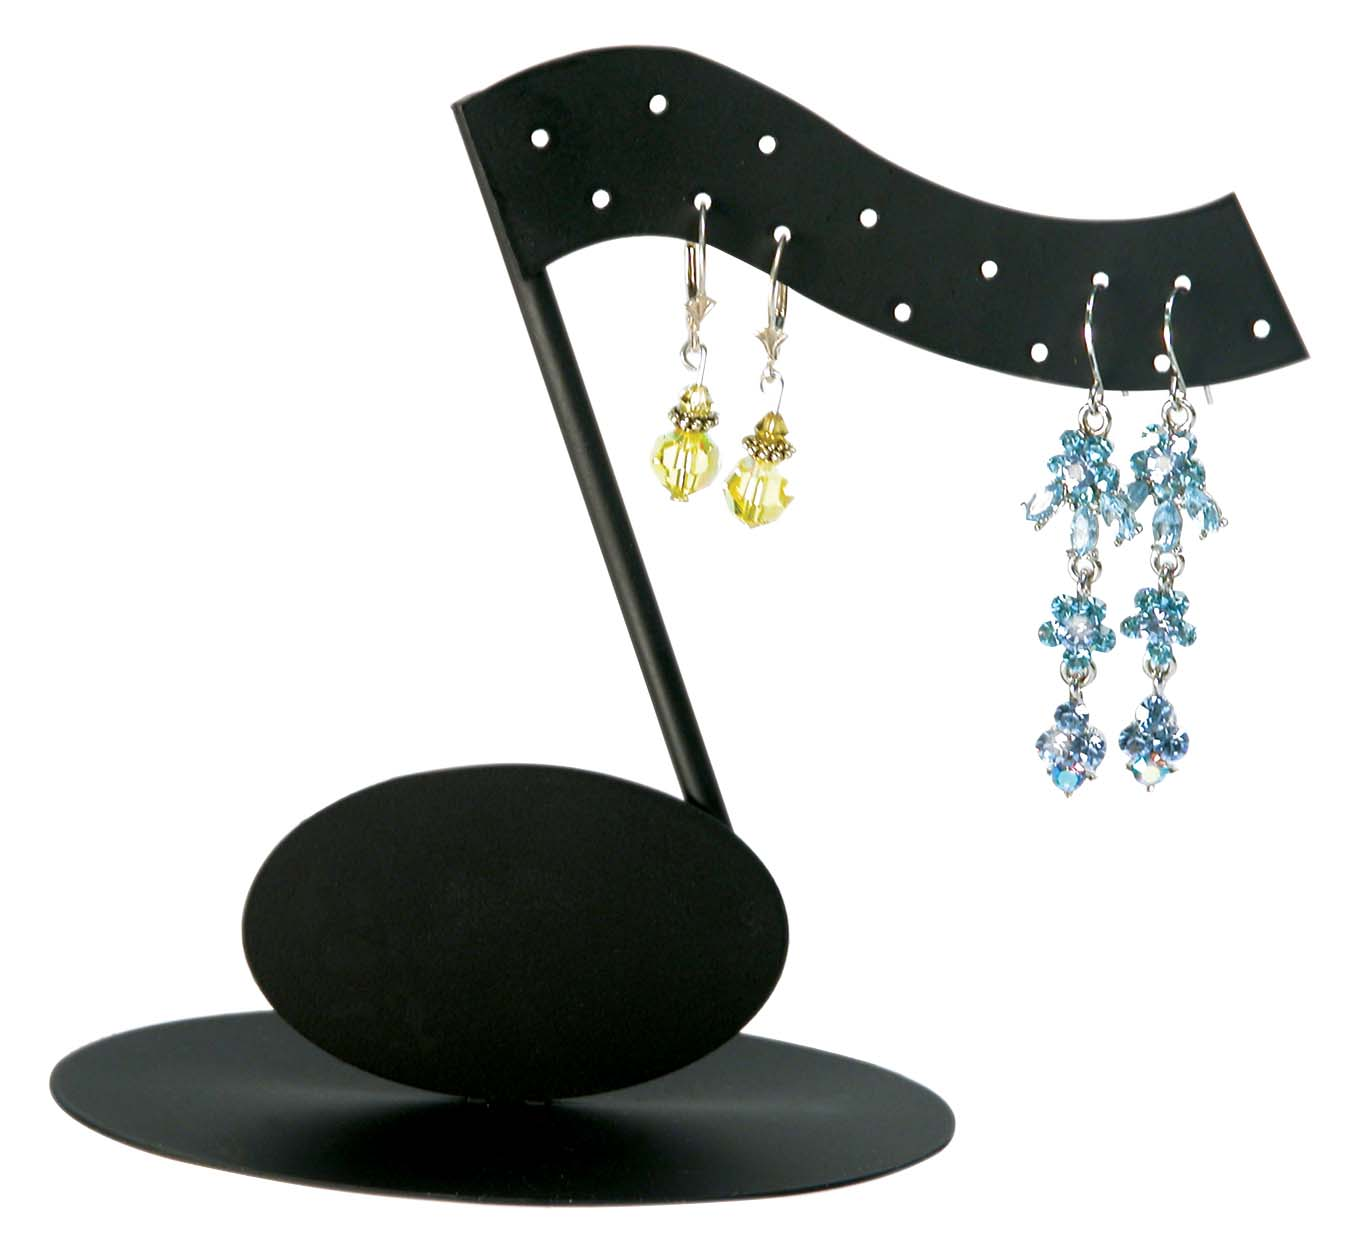 Mix Iron Earring Display Stand Jewelry Rack Tree With Wooden Base Black Size About 5cm Wide 10 15cm Long